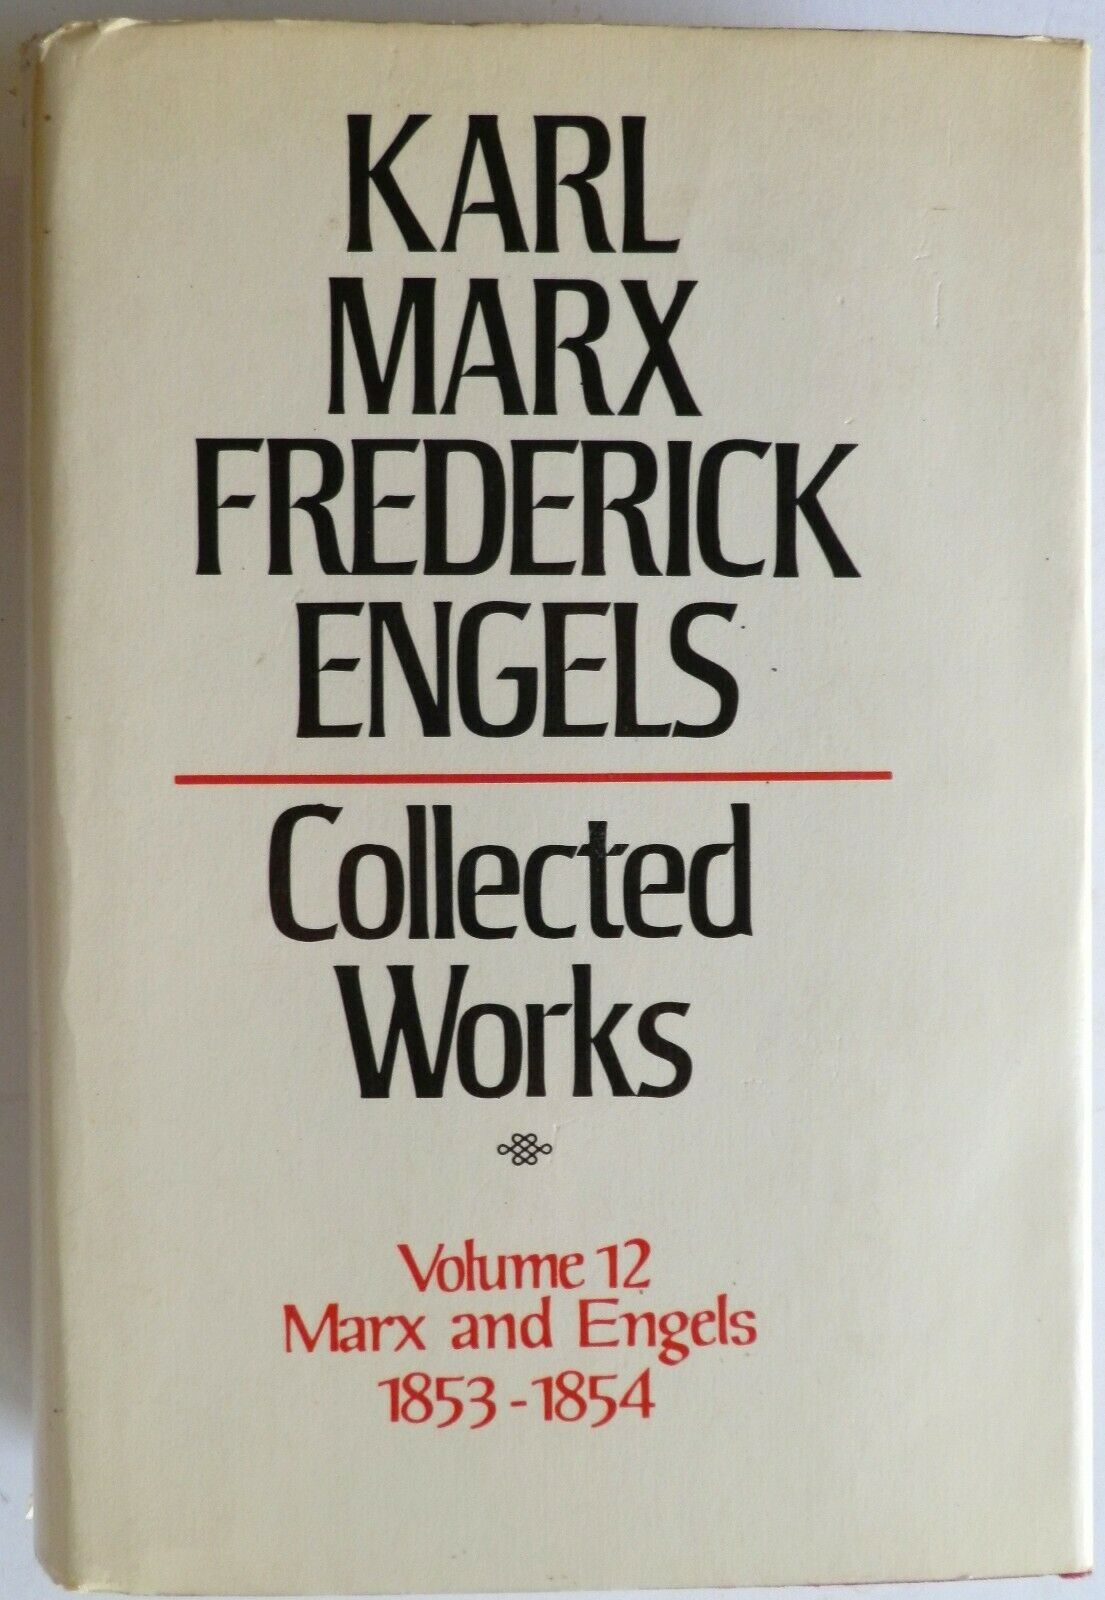 Marx and Engels Collected Works 1853-54 Frederick Engels Karl Marx